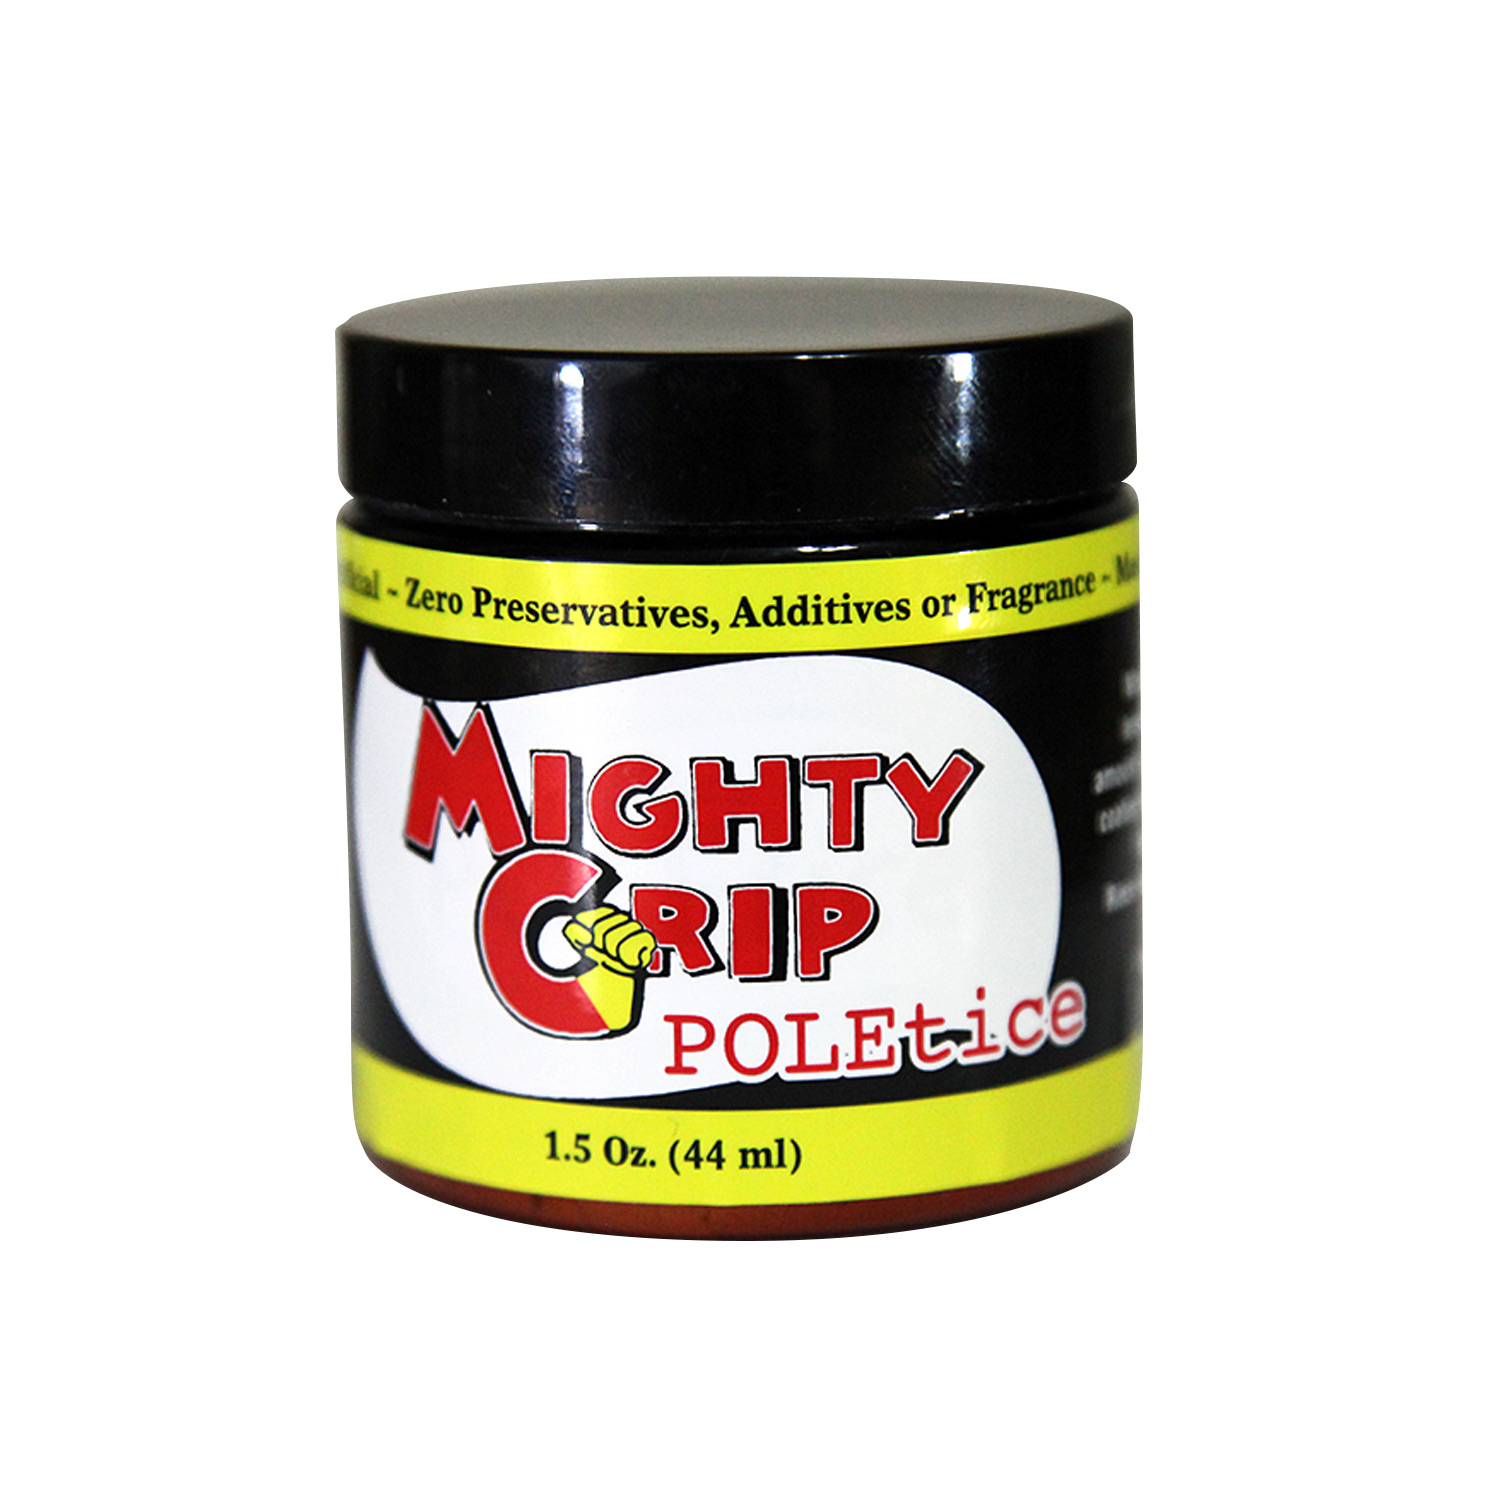 Mighty-Grip-Poletice